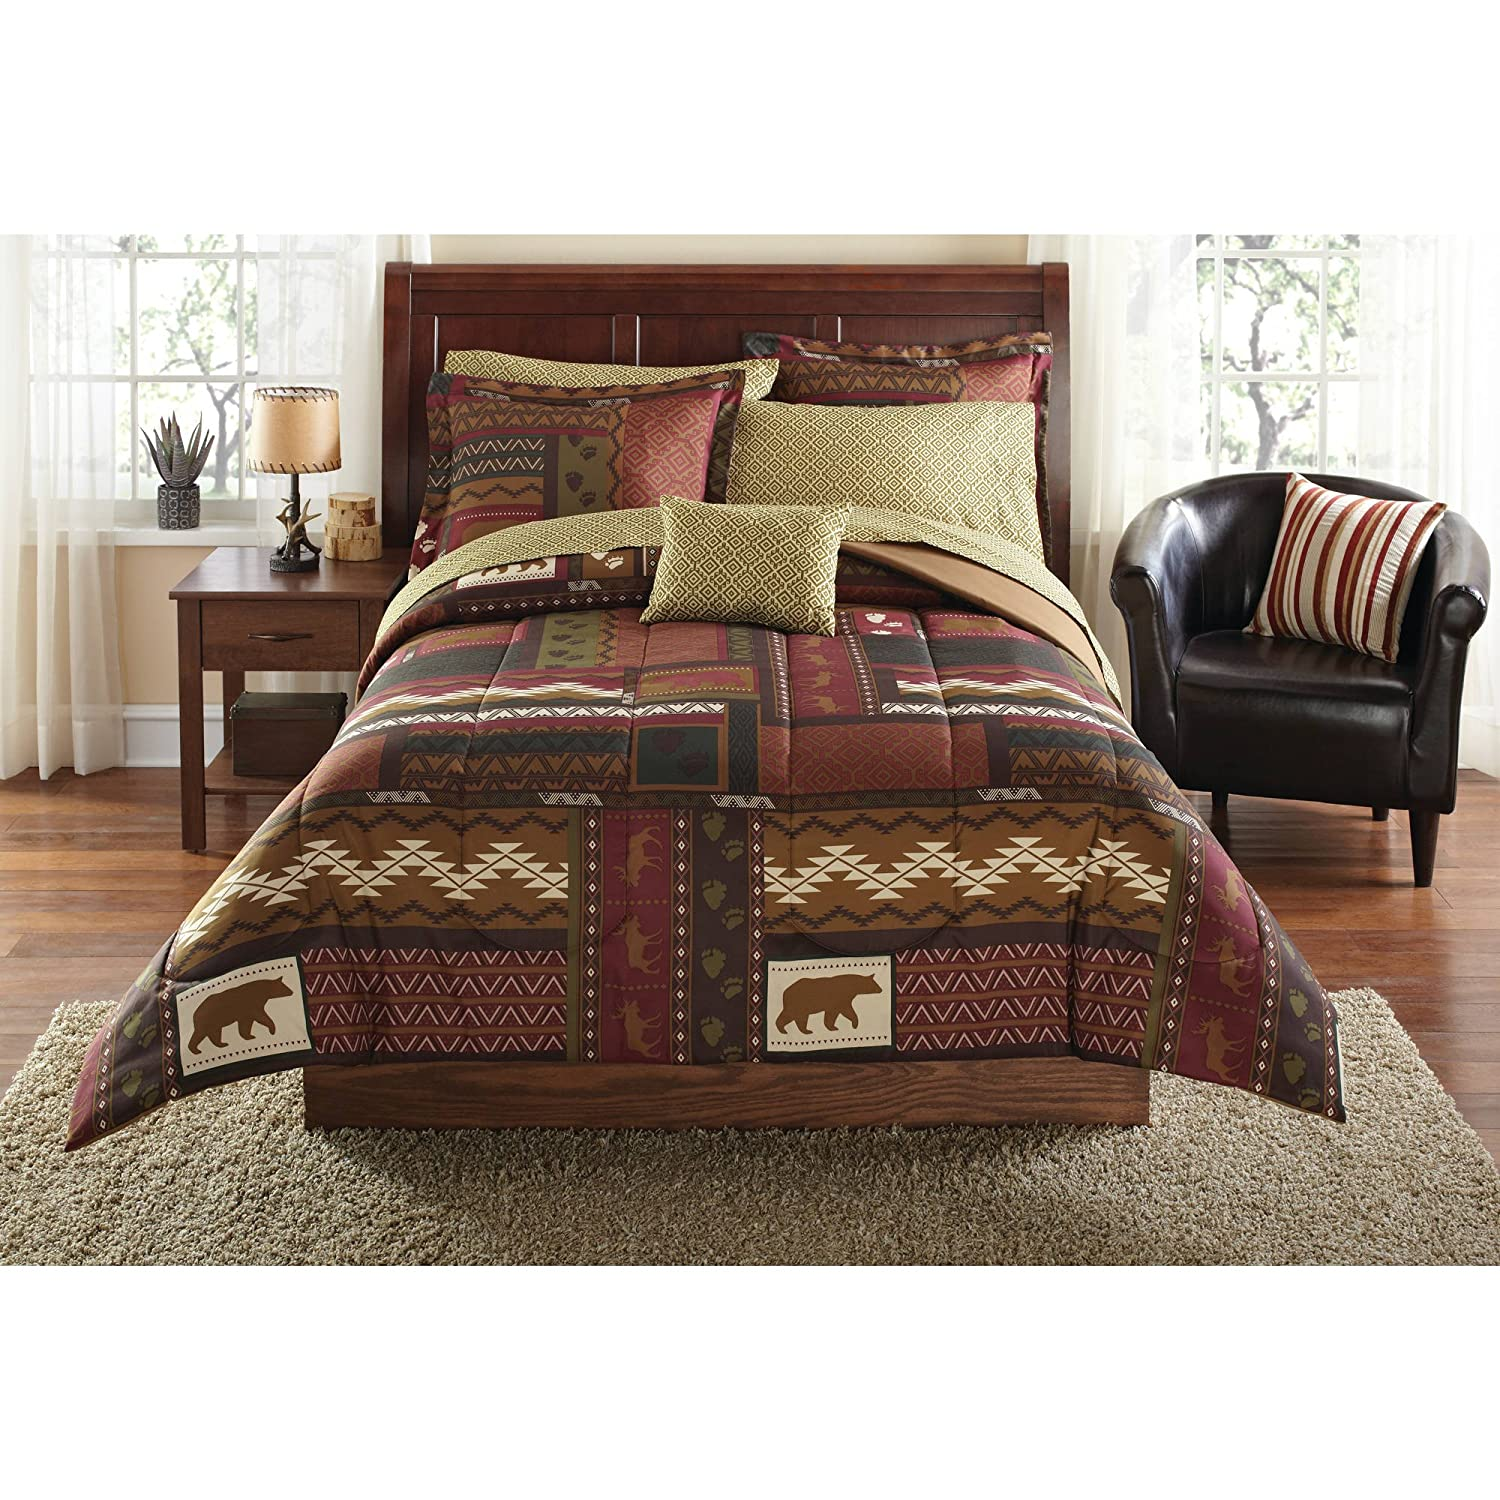 Bed In A Bag Sale Ease Bedding With Style